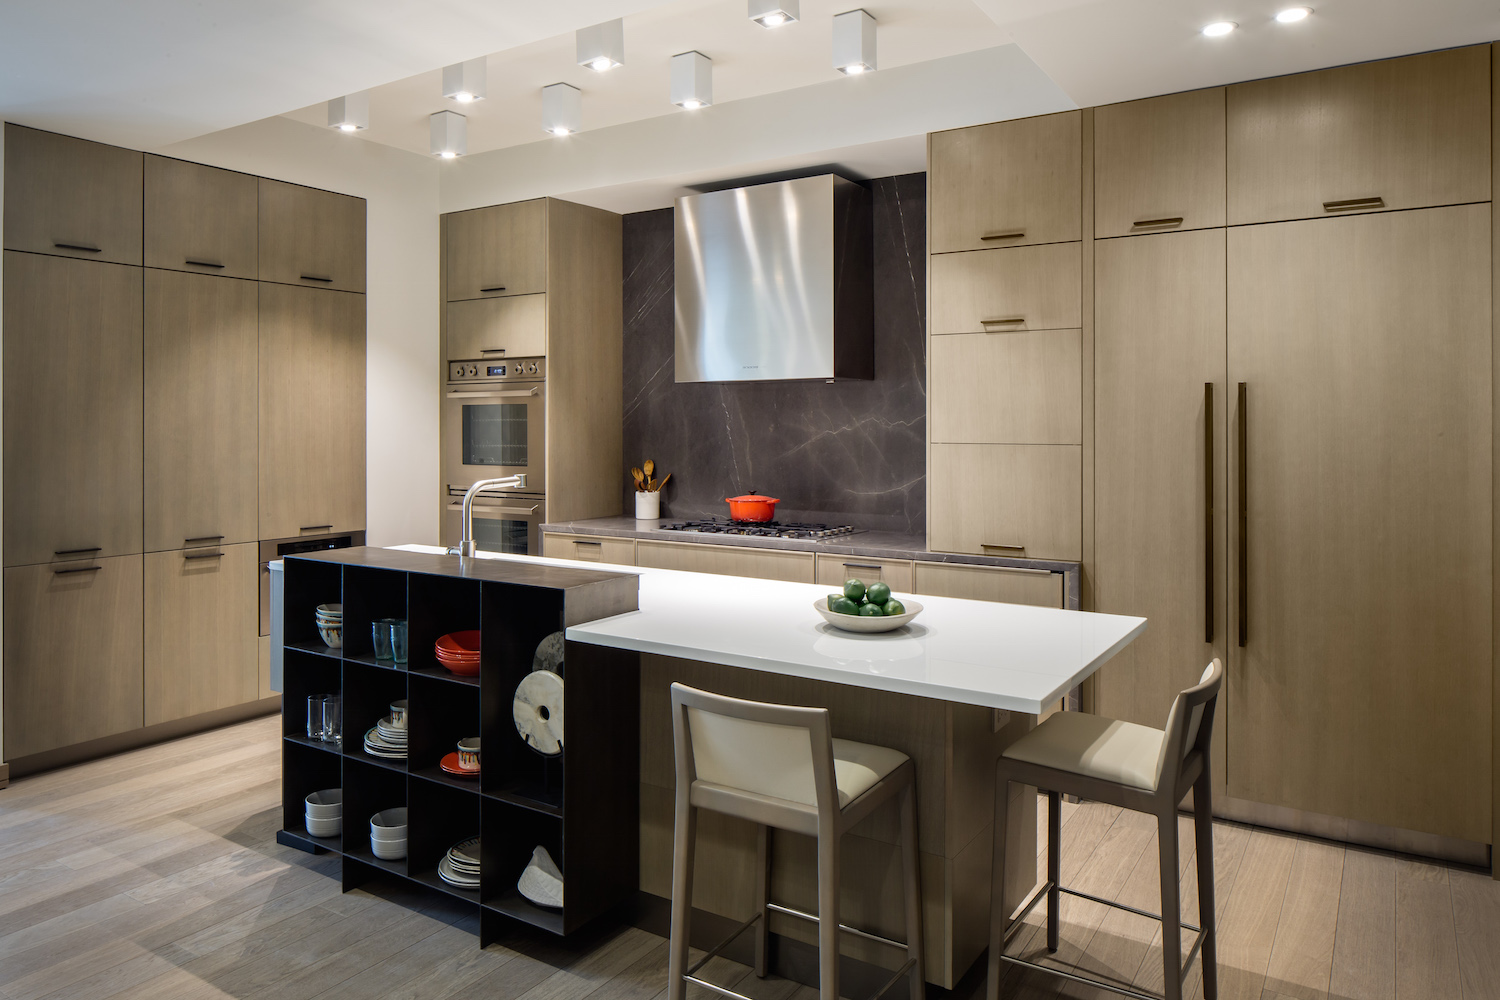 A kitchen at 88 Lexington Avenue. photo via HFZ Capital